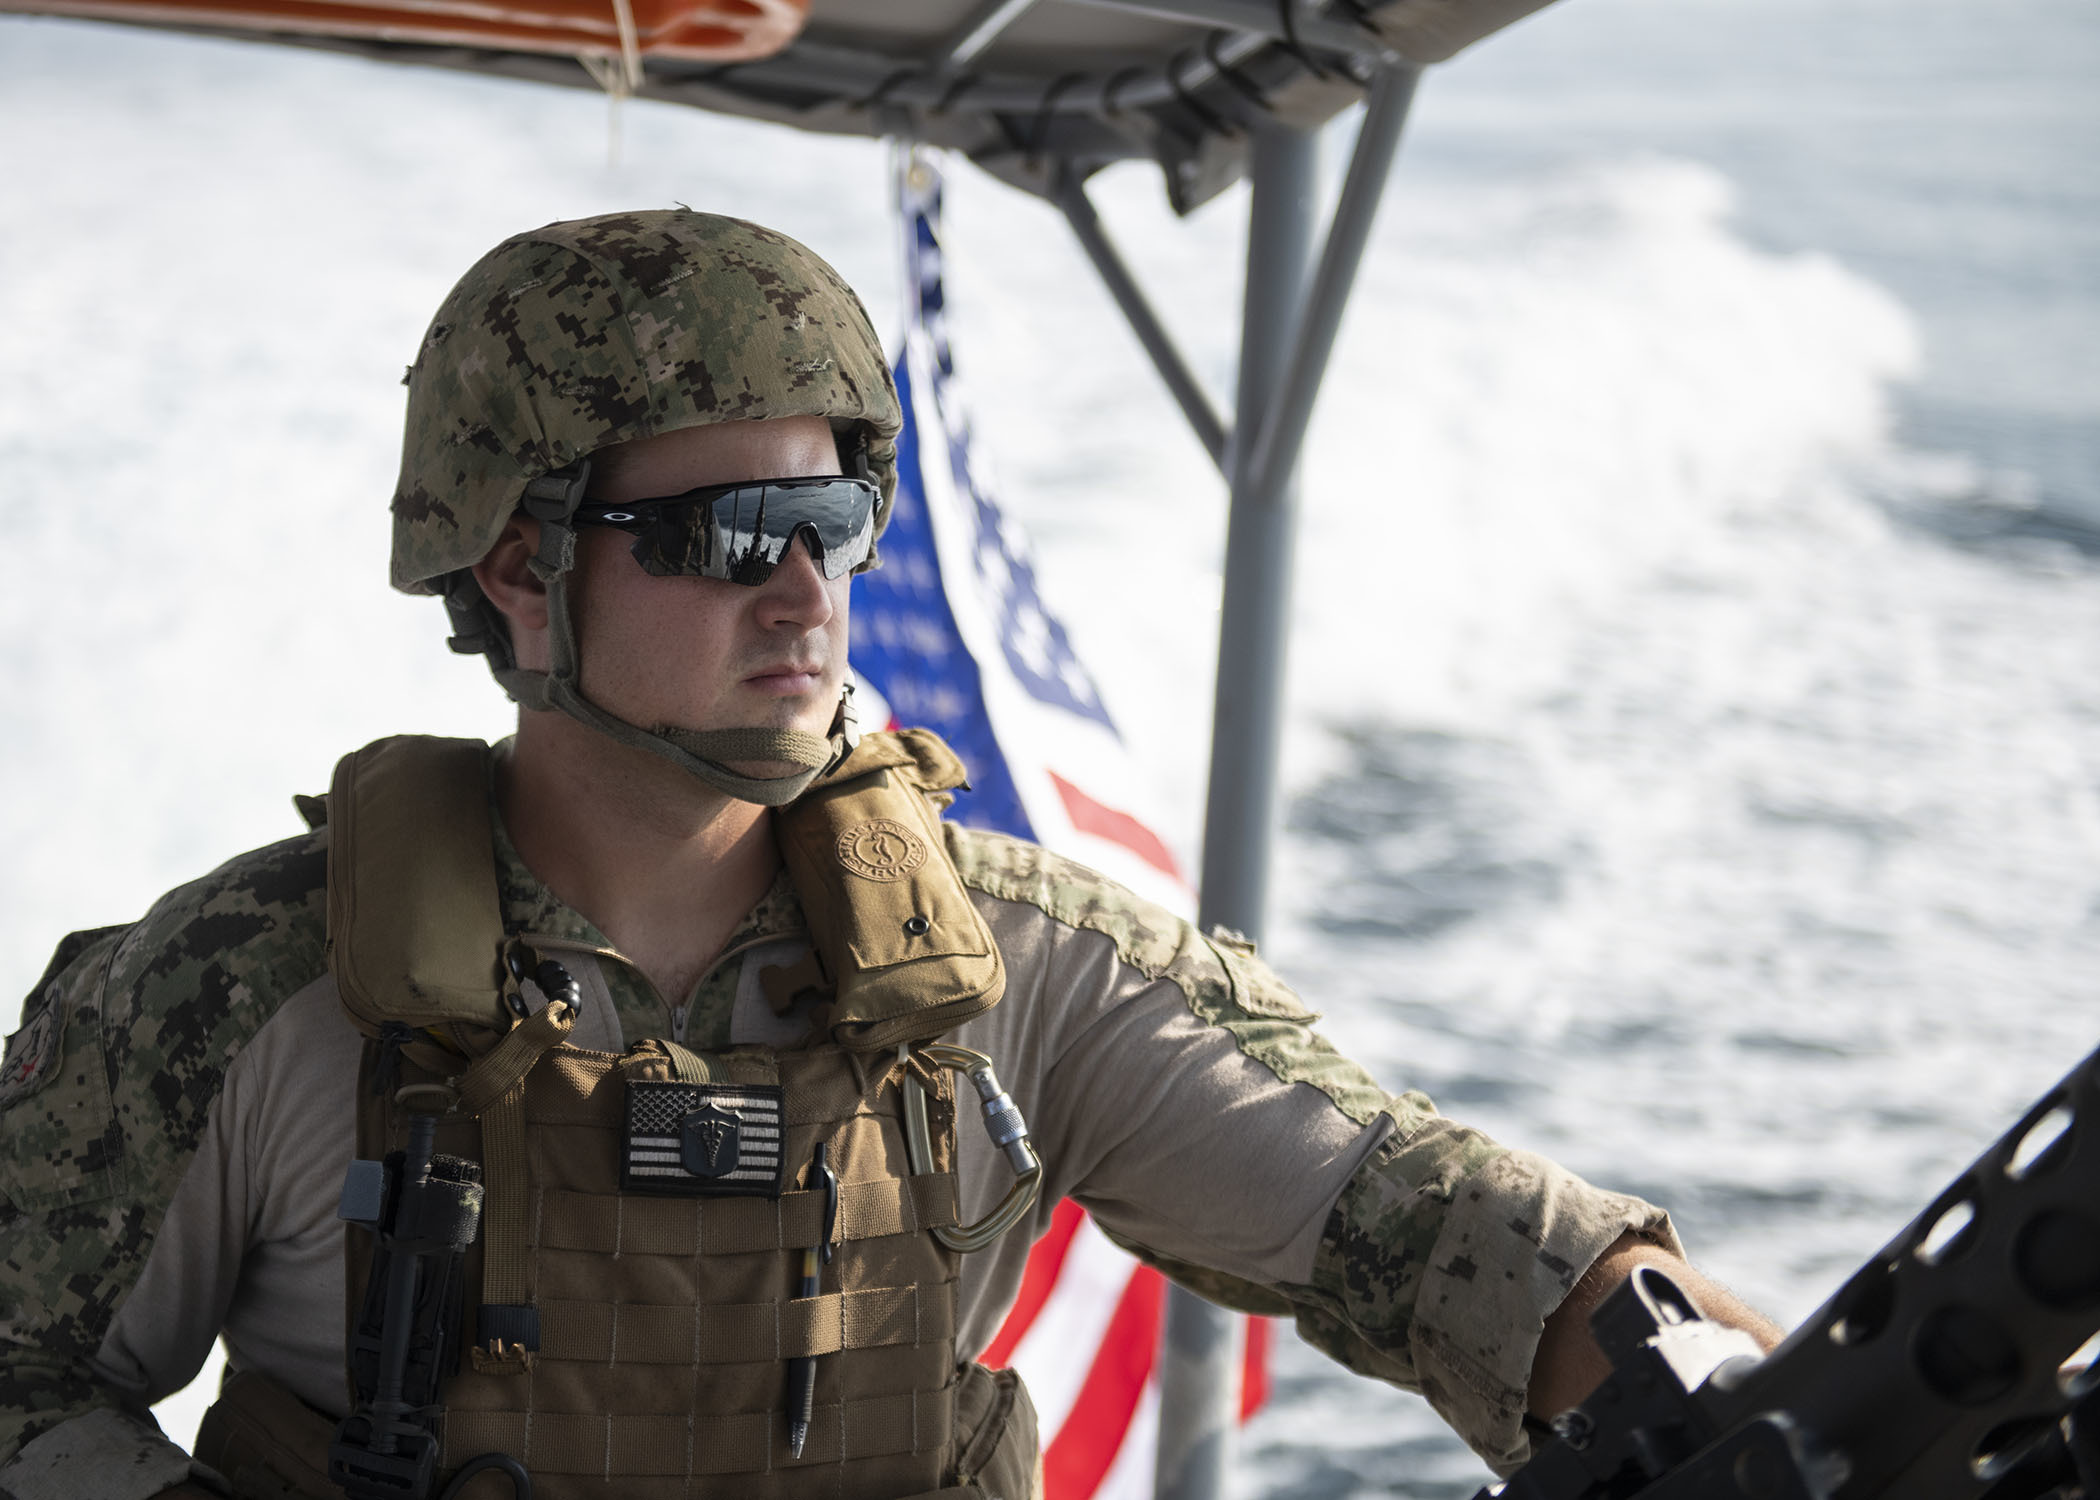 U.S. Navy Petty Officer 1st Class Alexander Weigel, engineer under instruction, Coastal Riverine Squadron 8 (CRS 8), Combined Joint Task Force-Horn of Africa, Camp Lemonnier, Djibouti, mans a security post on a Rigid Hull Inflatable Boat (RHIB) while en route to provide armed security escort in the Gulf of Tadjourah, Dec. 7, 2018. Each RHIB team in CRS 8 is made of up a diverse group of U.S. Navy Reserve Sailors with different skills and backgrounds, which aids in protecting U.S. and partner interests in the East Africa combined joint operations area. (U.S. Air Force photo by Tech. Sgt. Shawn Nickel)